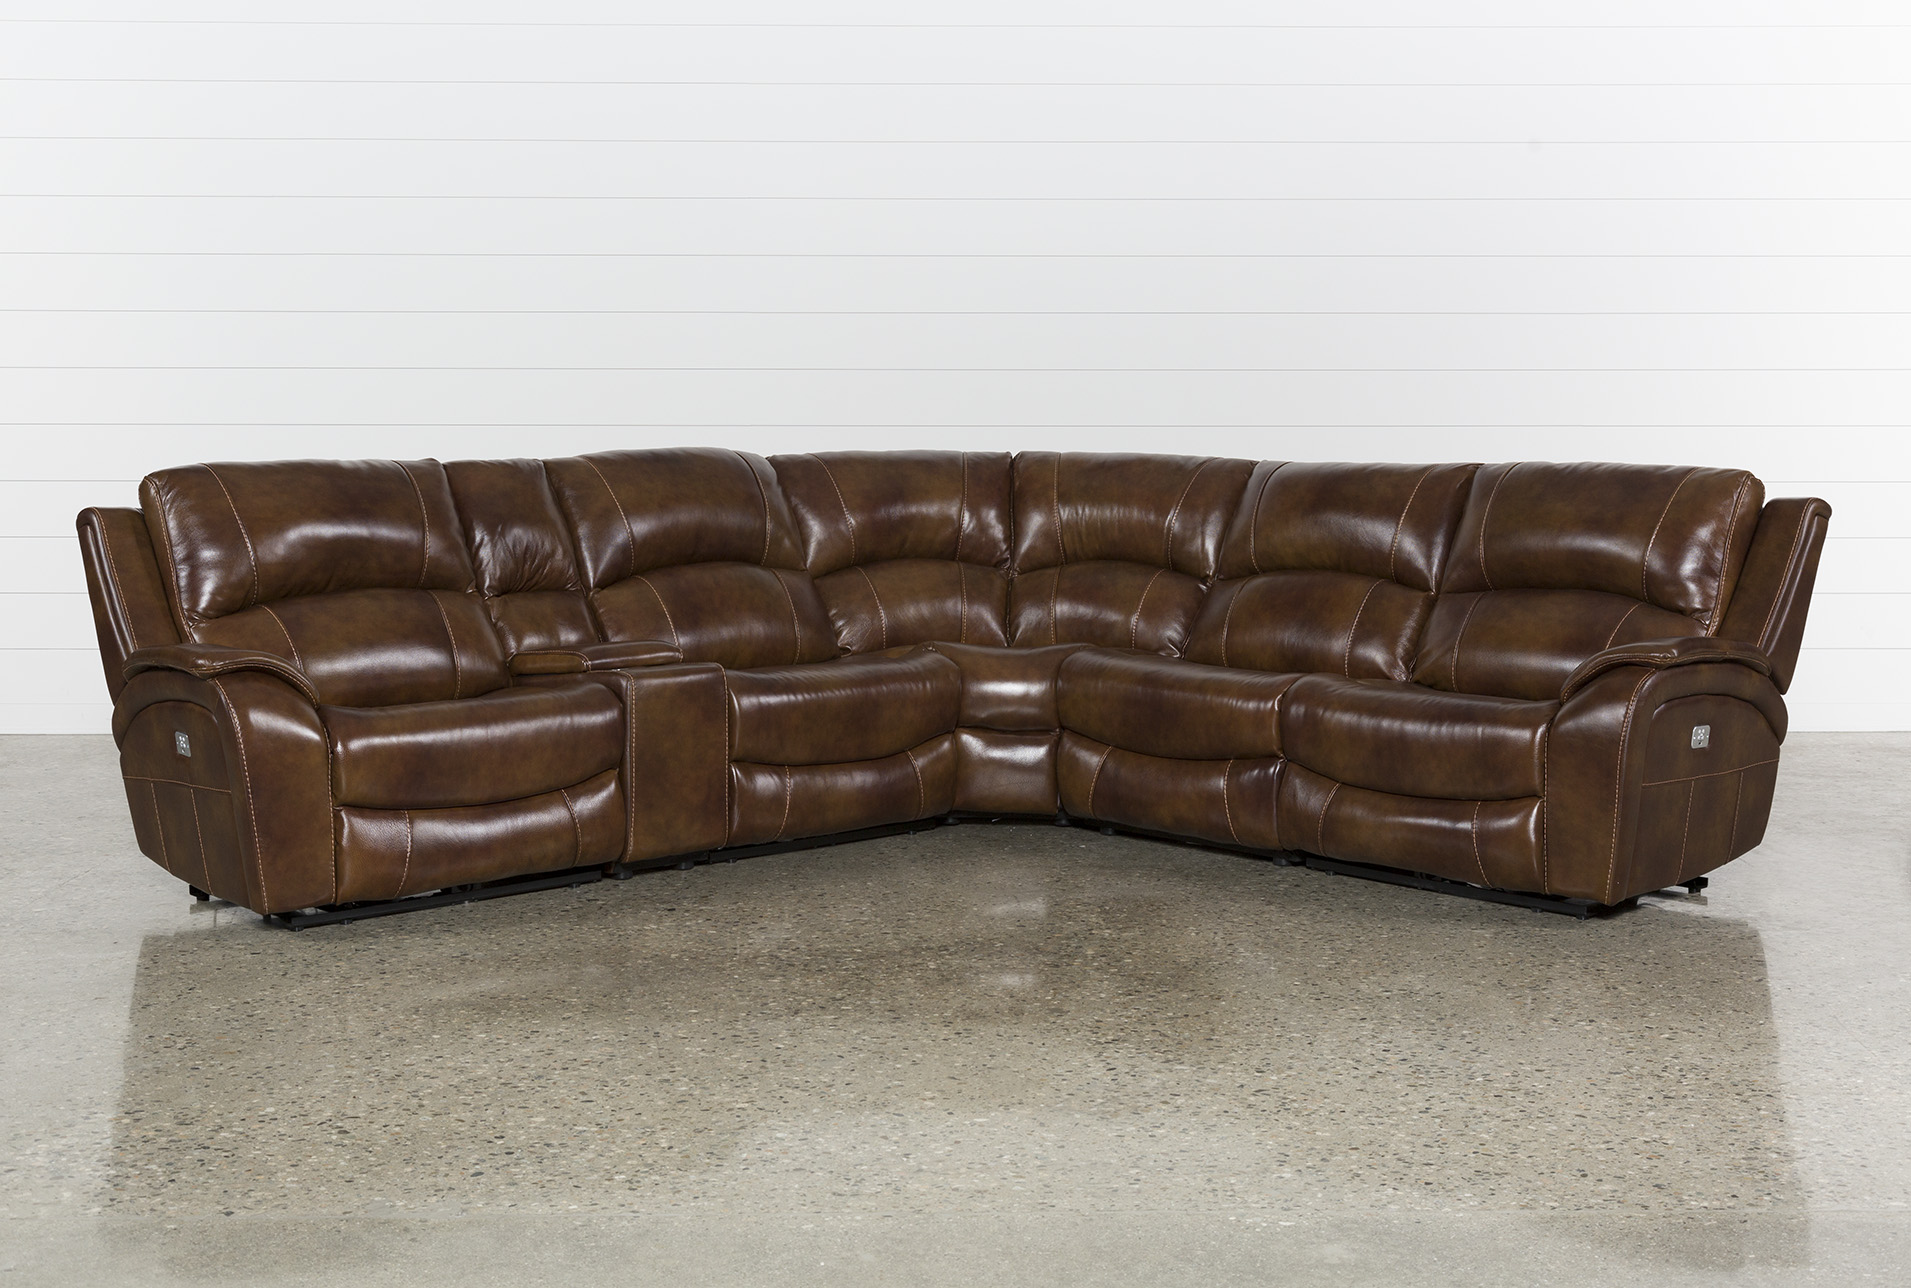 Sofa Cognacfarben Travis Cognac Leather 6 Piece Power Reclining Sectional W Pwr Hdrst Usb